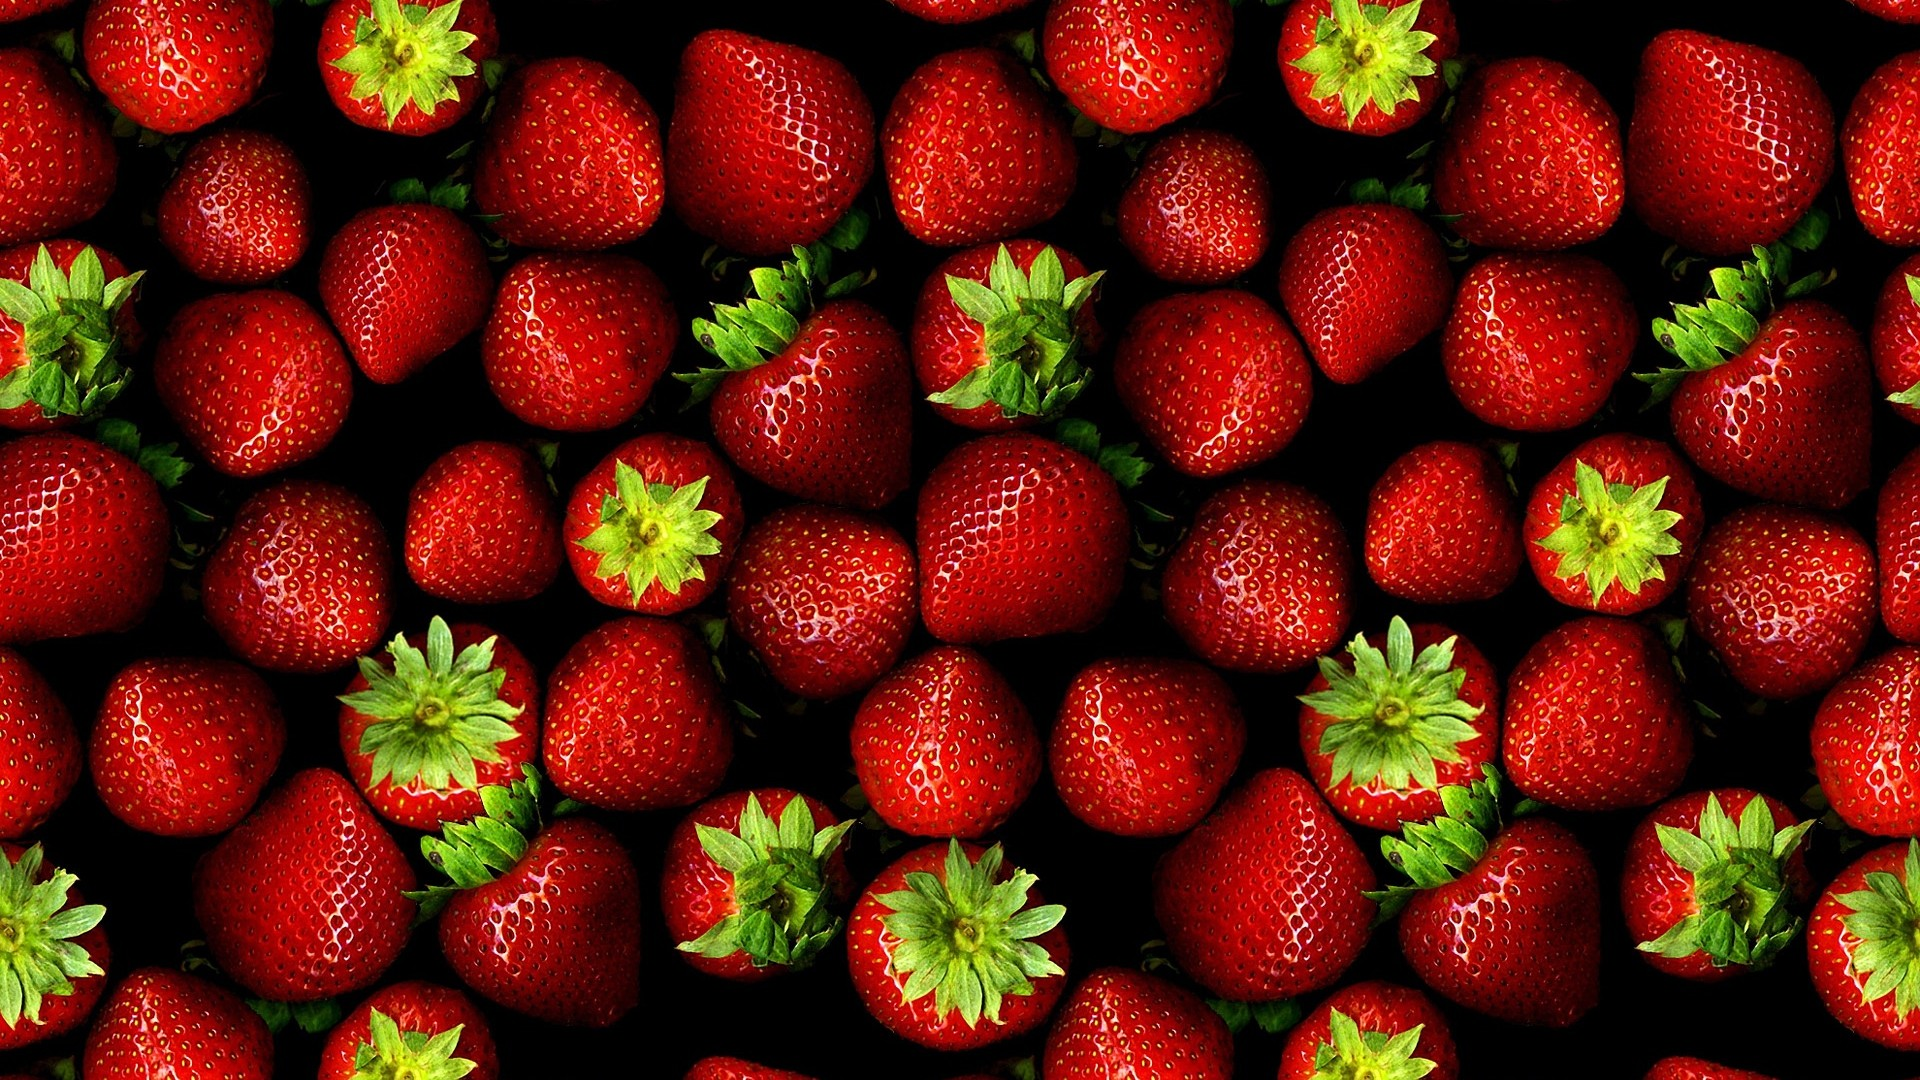 Hd wallpaper high resolution - High Quality Strawberry Wallpaper Hd Wallpaper